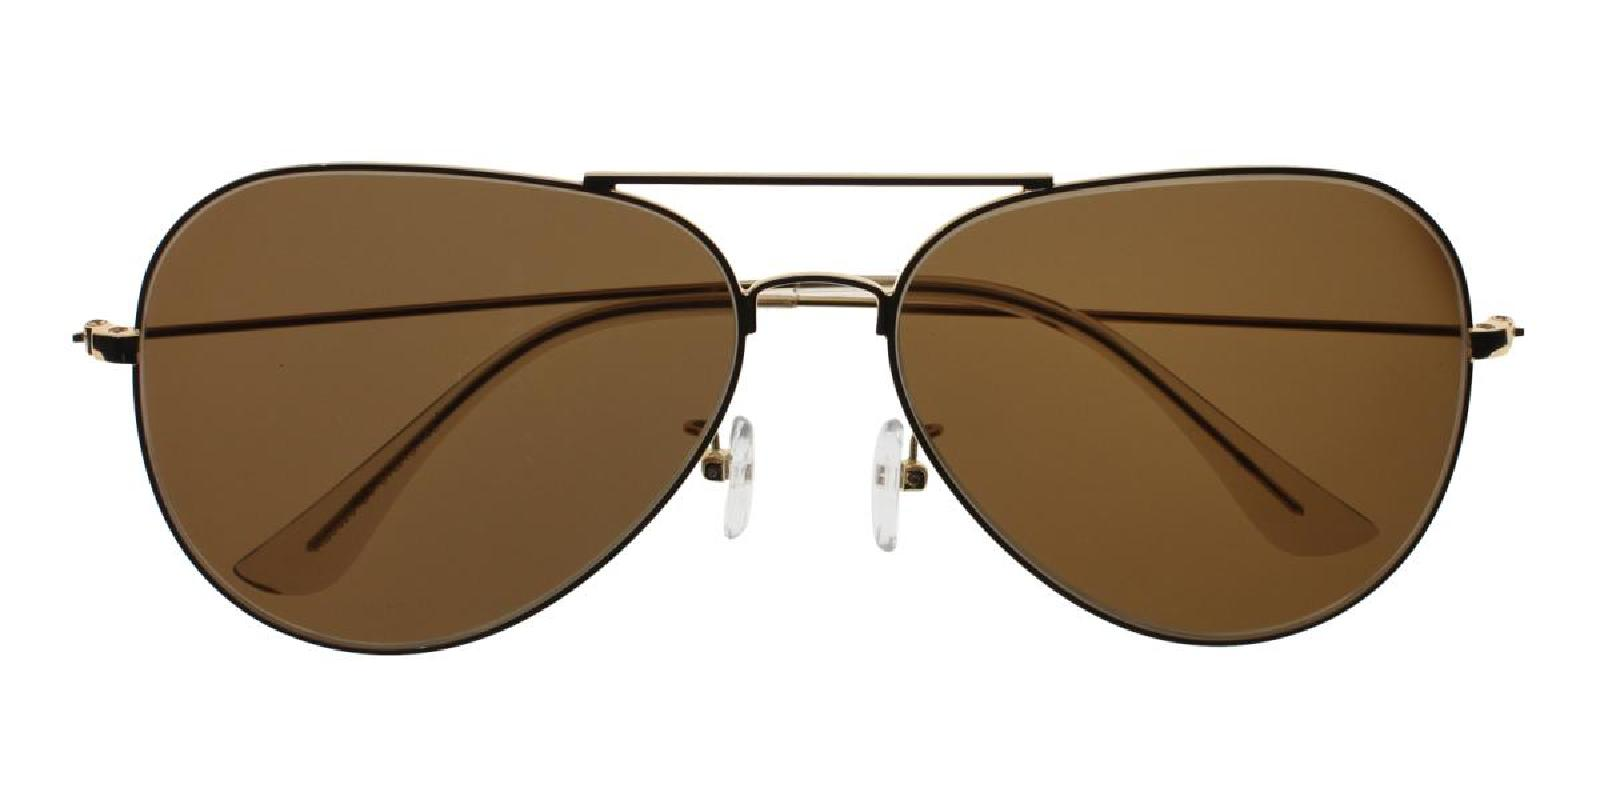 Aoline-Gold-Aviator-Metal-Sunglasses-additional2